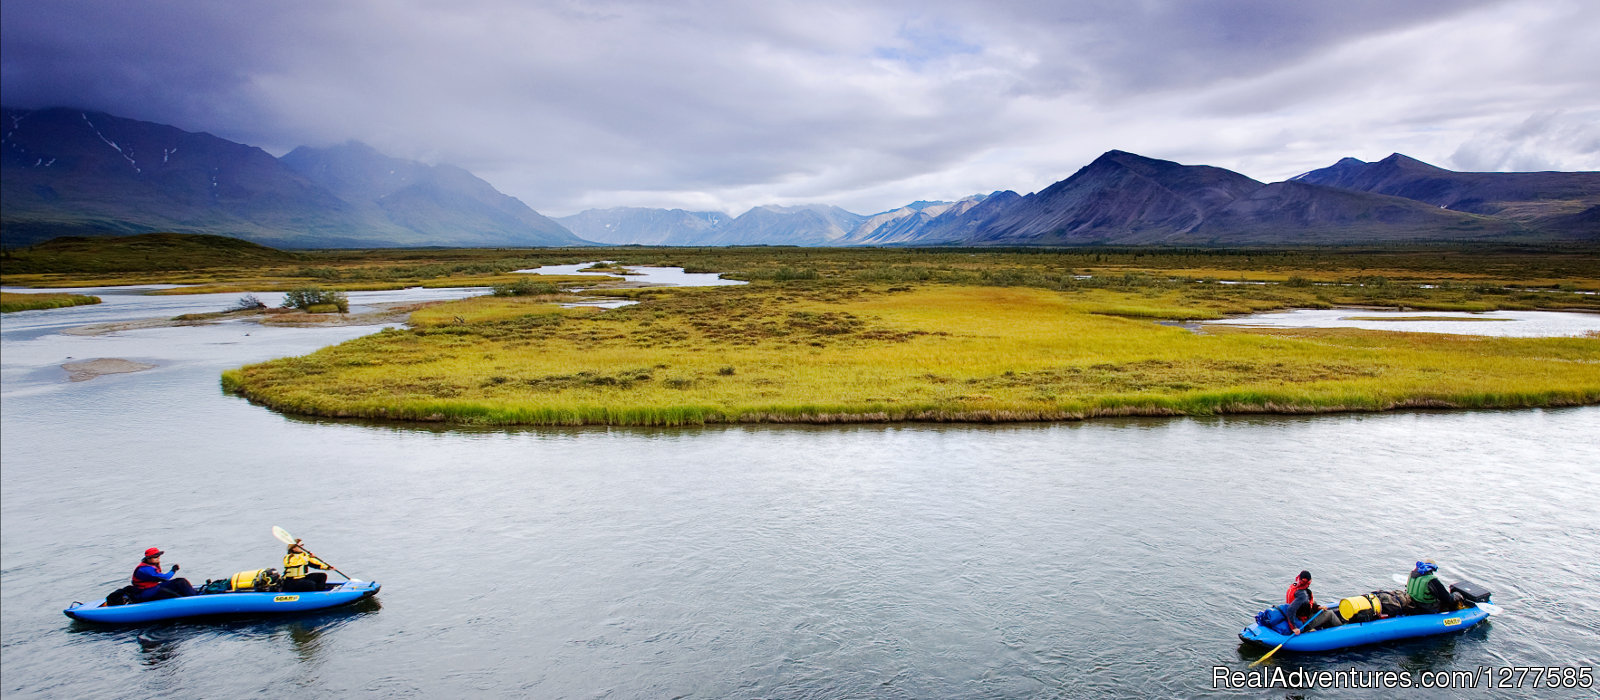 Chilikadrotna River - Lake Clark National Park | Image #4/5 | Alaska Alpine Adventures